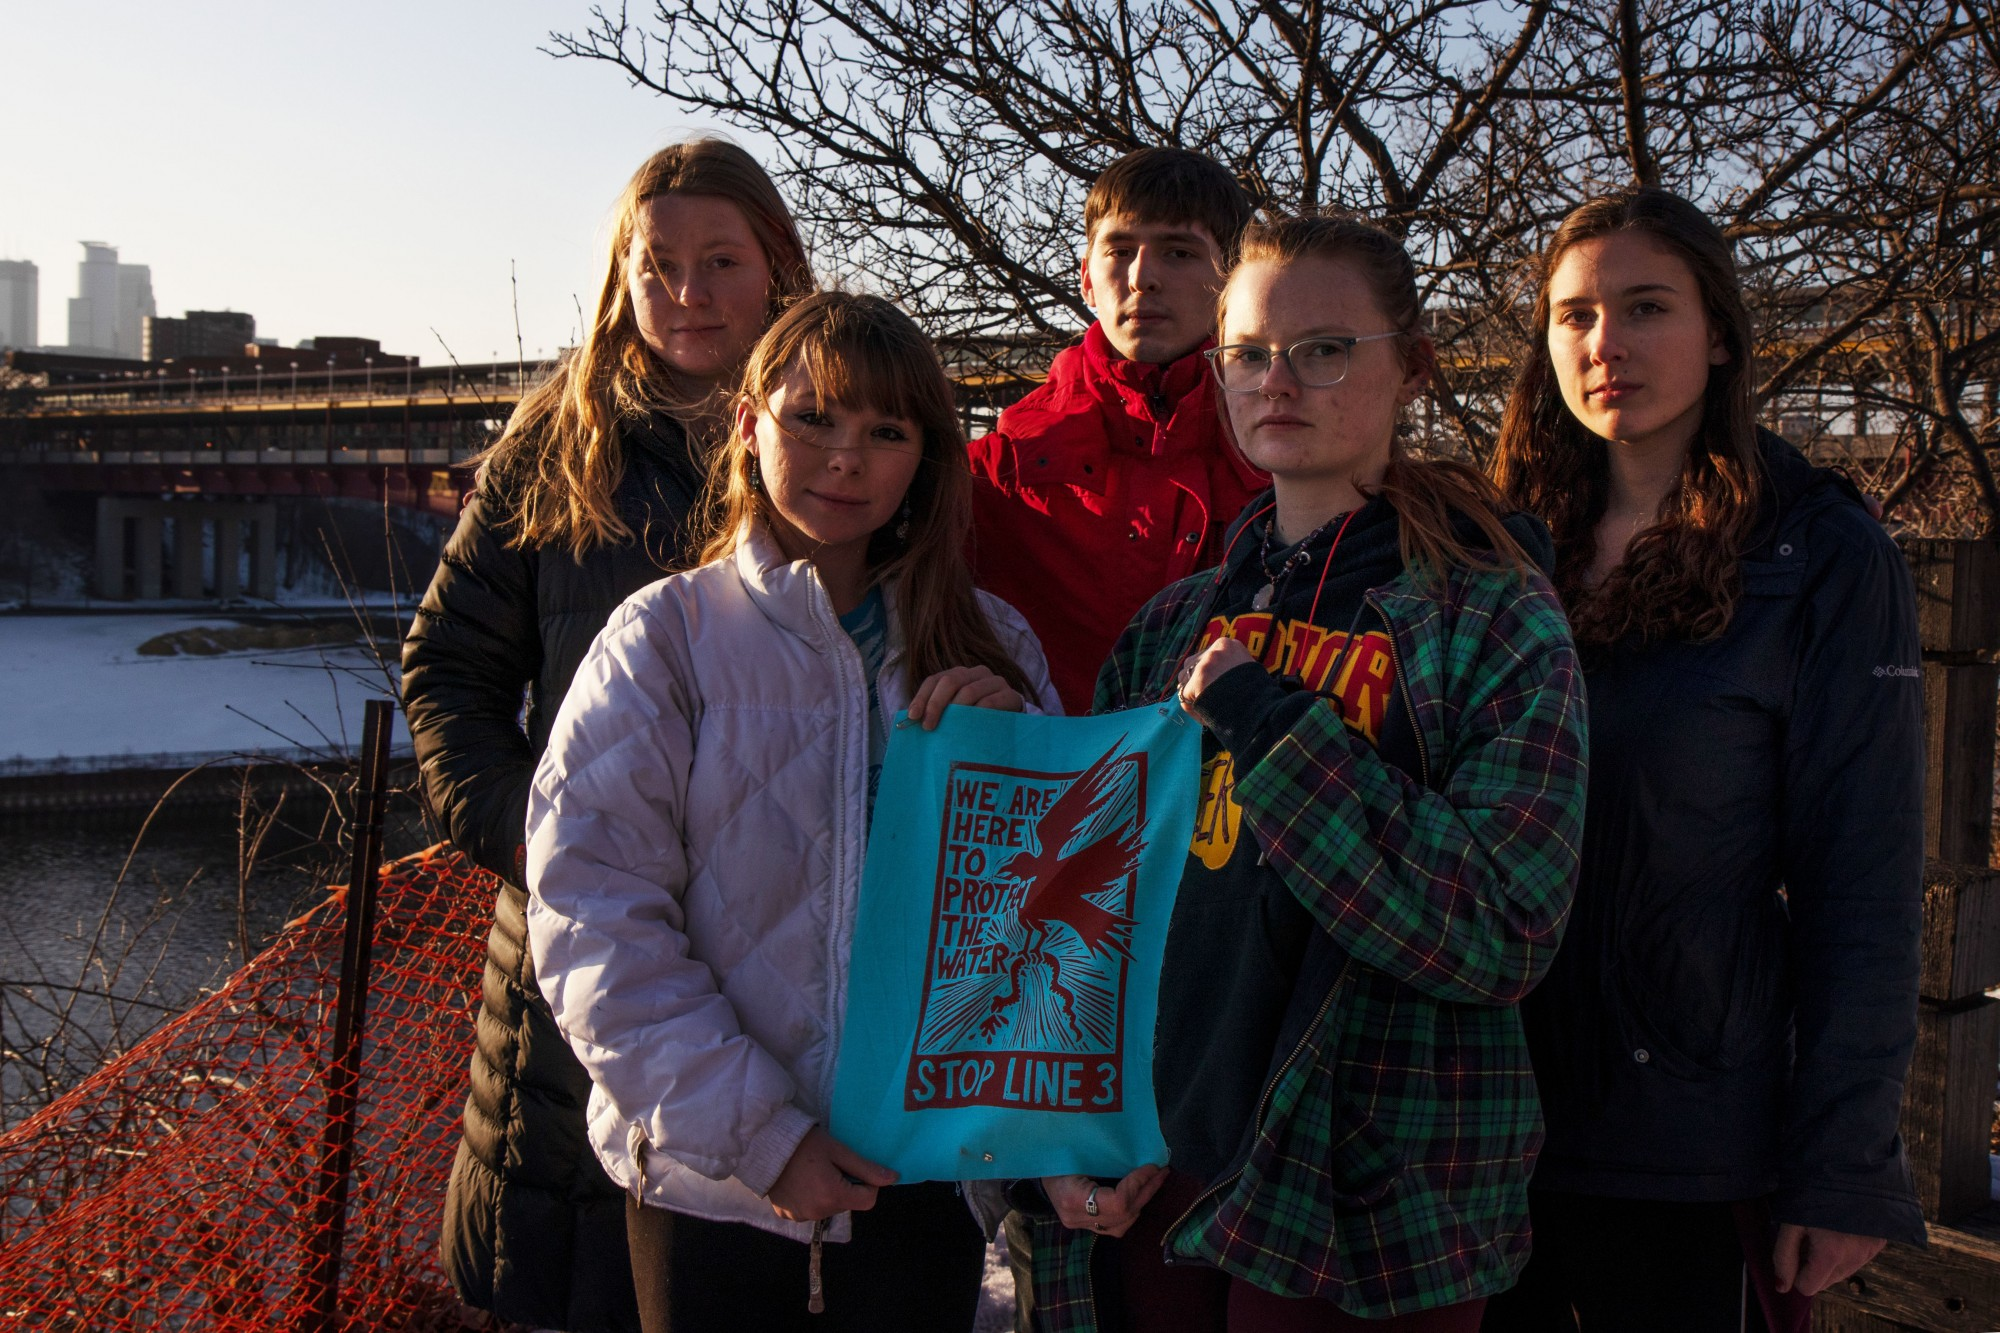 """From left, Grace Hogan, Madeline Miller, Benjamin Perez, Elizabeth Zanmiller and Sally Zuzuly, officers of the new """"Students Against Pilelines"""" student group, pose for a group portrait by the Mississippi river on Friday, Feb. 21. Miller says that issues around pipeline construction, including Line 3, affect students on campus as well as the rest of the state."""